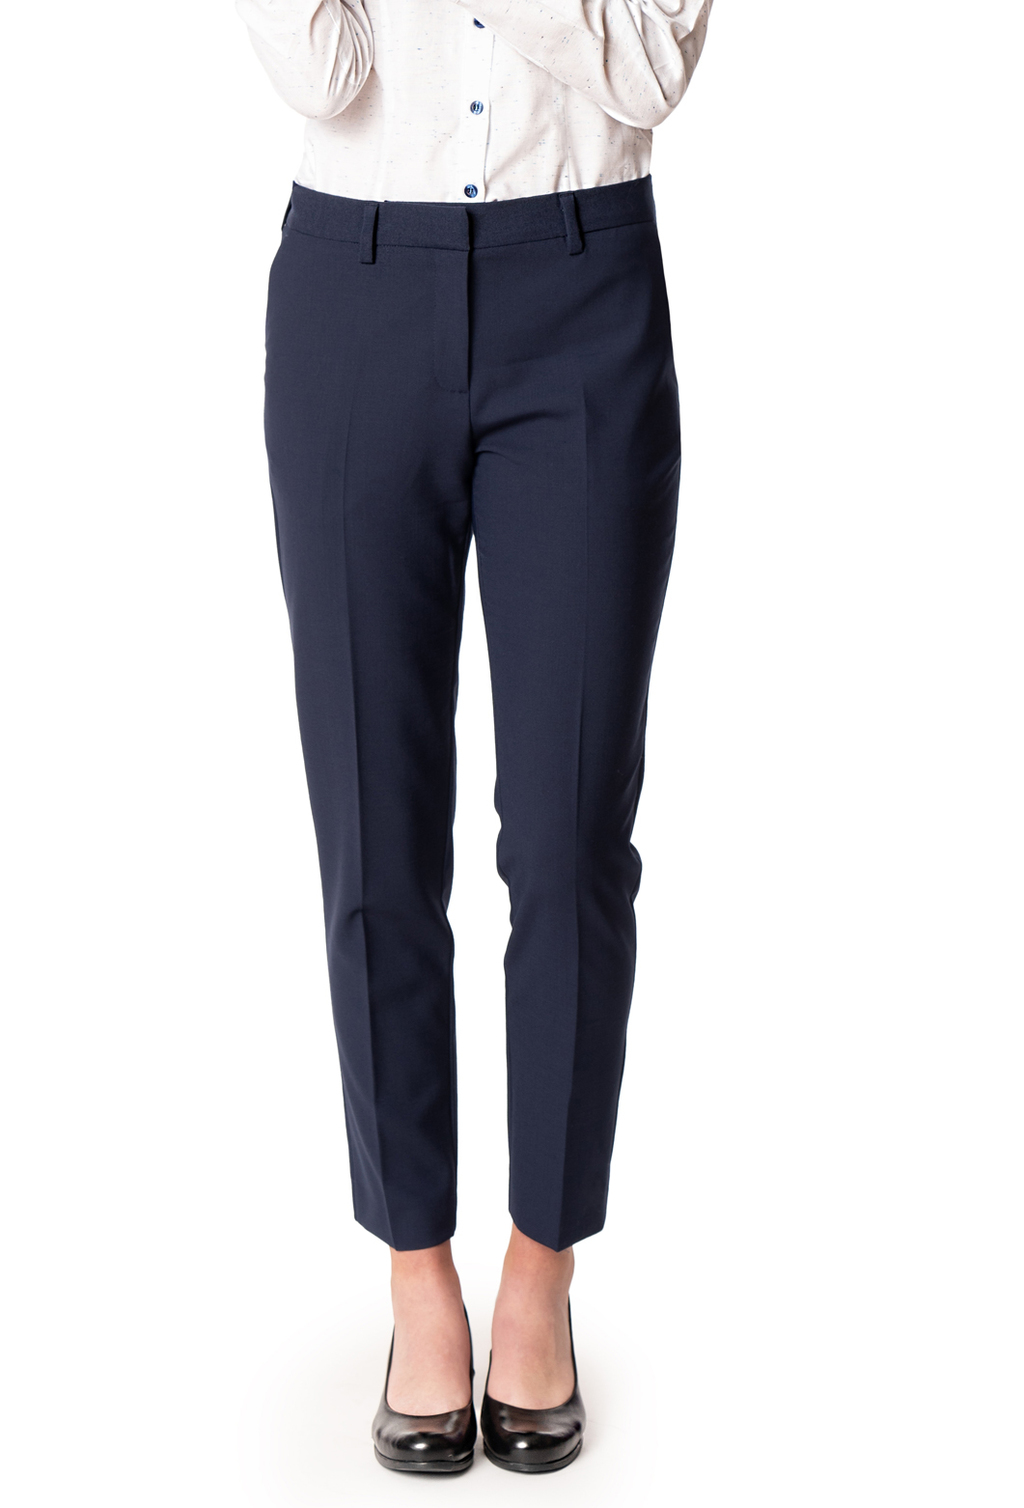 WOMEN'S TROUSER AQUALASTIC